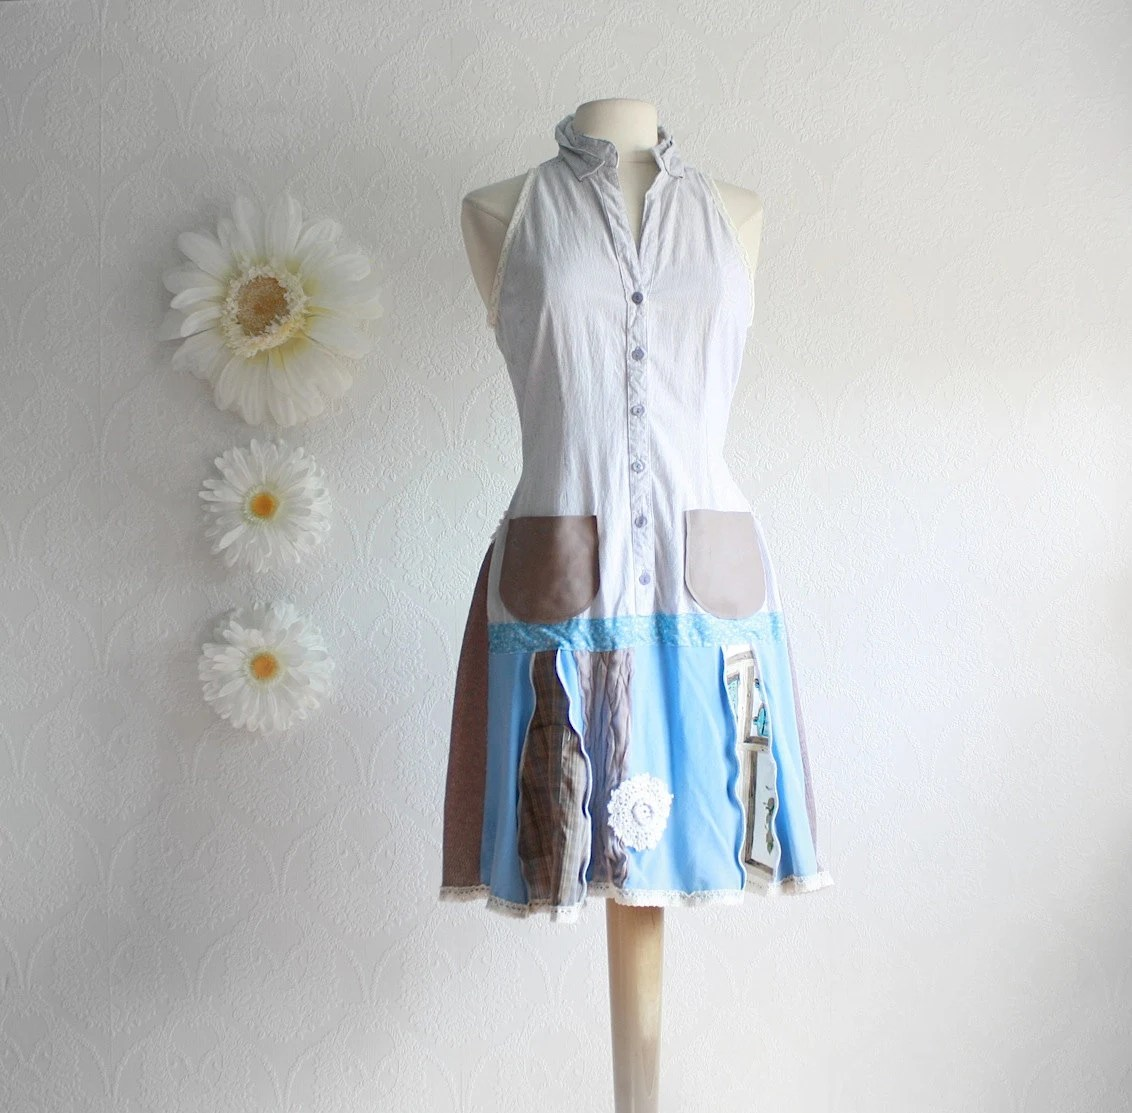 Unique Clothing Plus Size Women's Upcycled Dress Bohemian Clothing Light Blue Drop